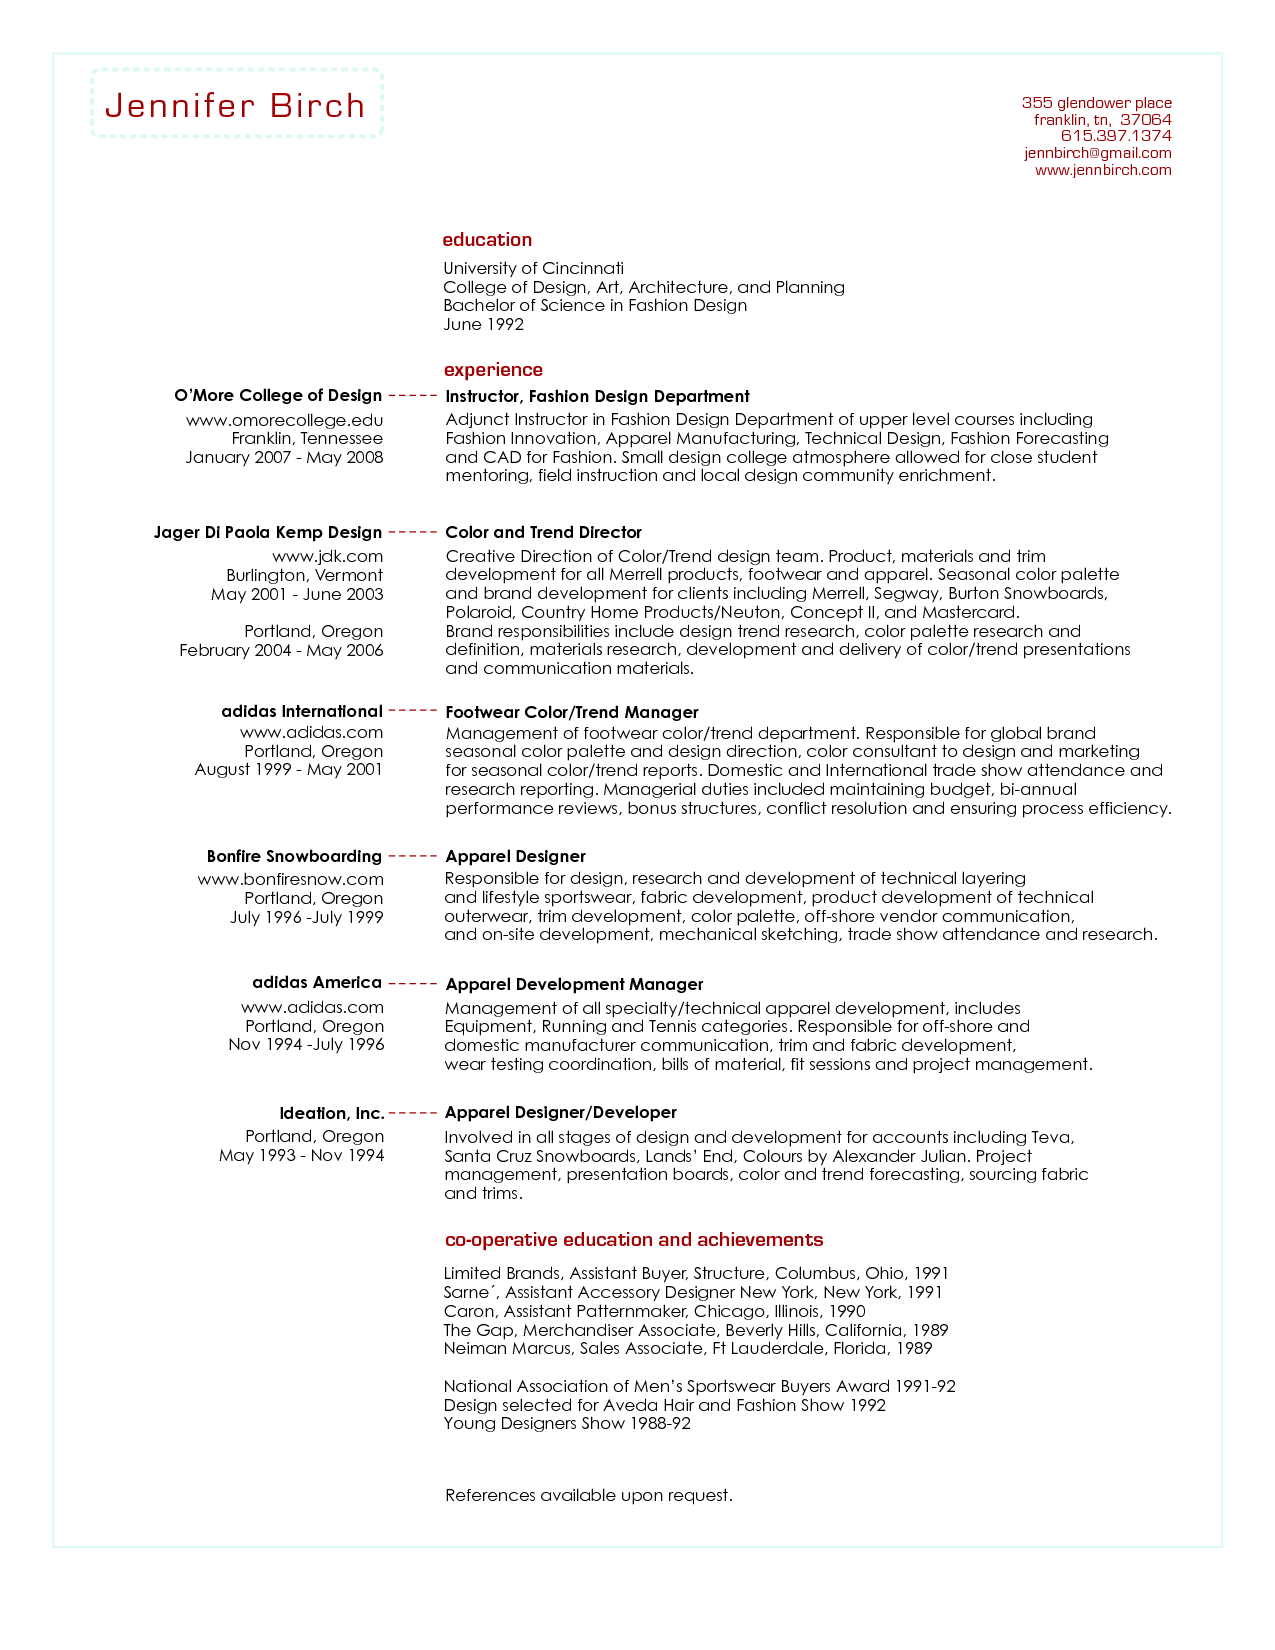 Project Manager Resume Templates - Junior Fashion Er Resume Skills Google Search